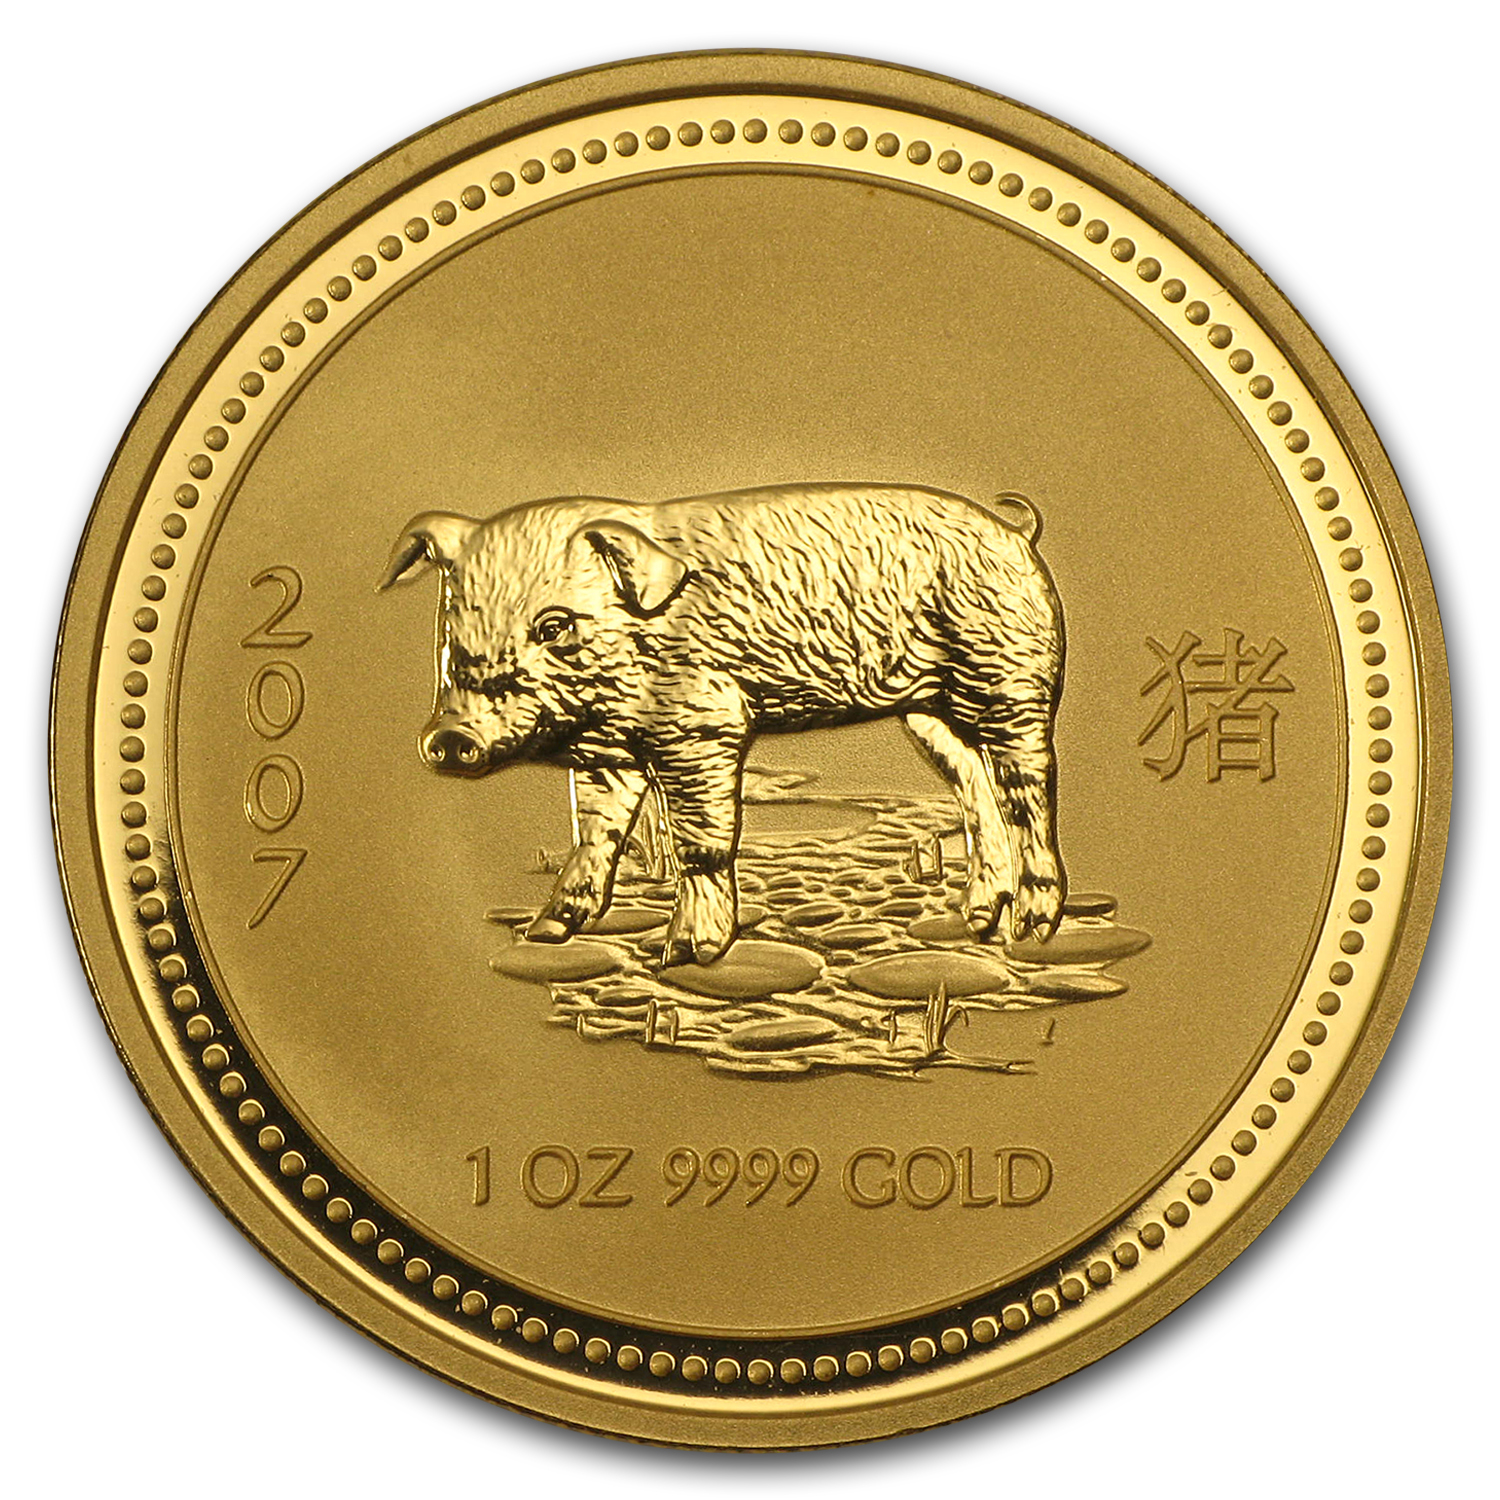 2007 1 oz Gold Lunar Year of the Pig BU (Series I)